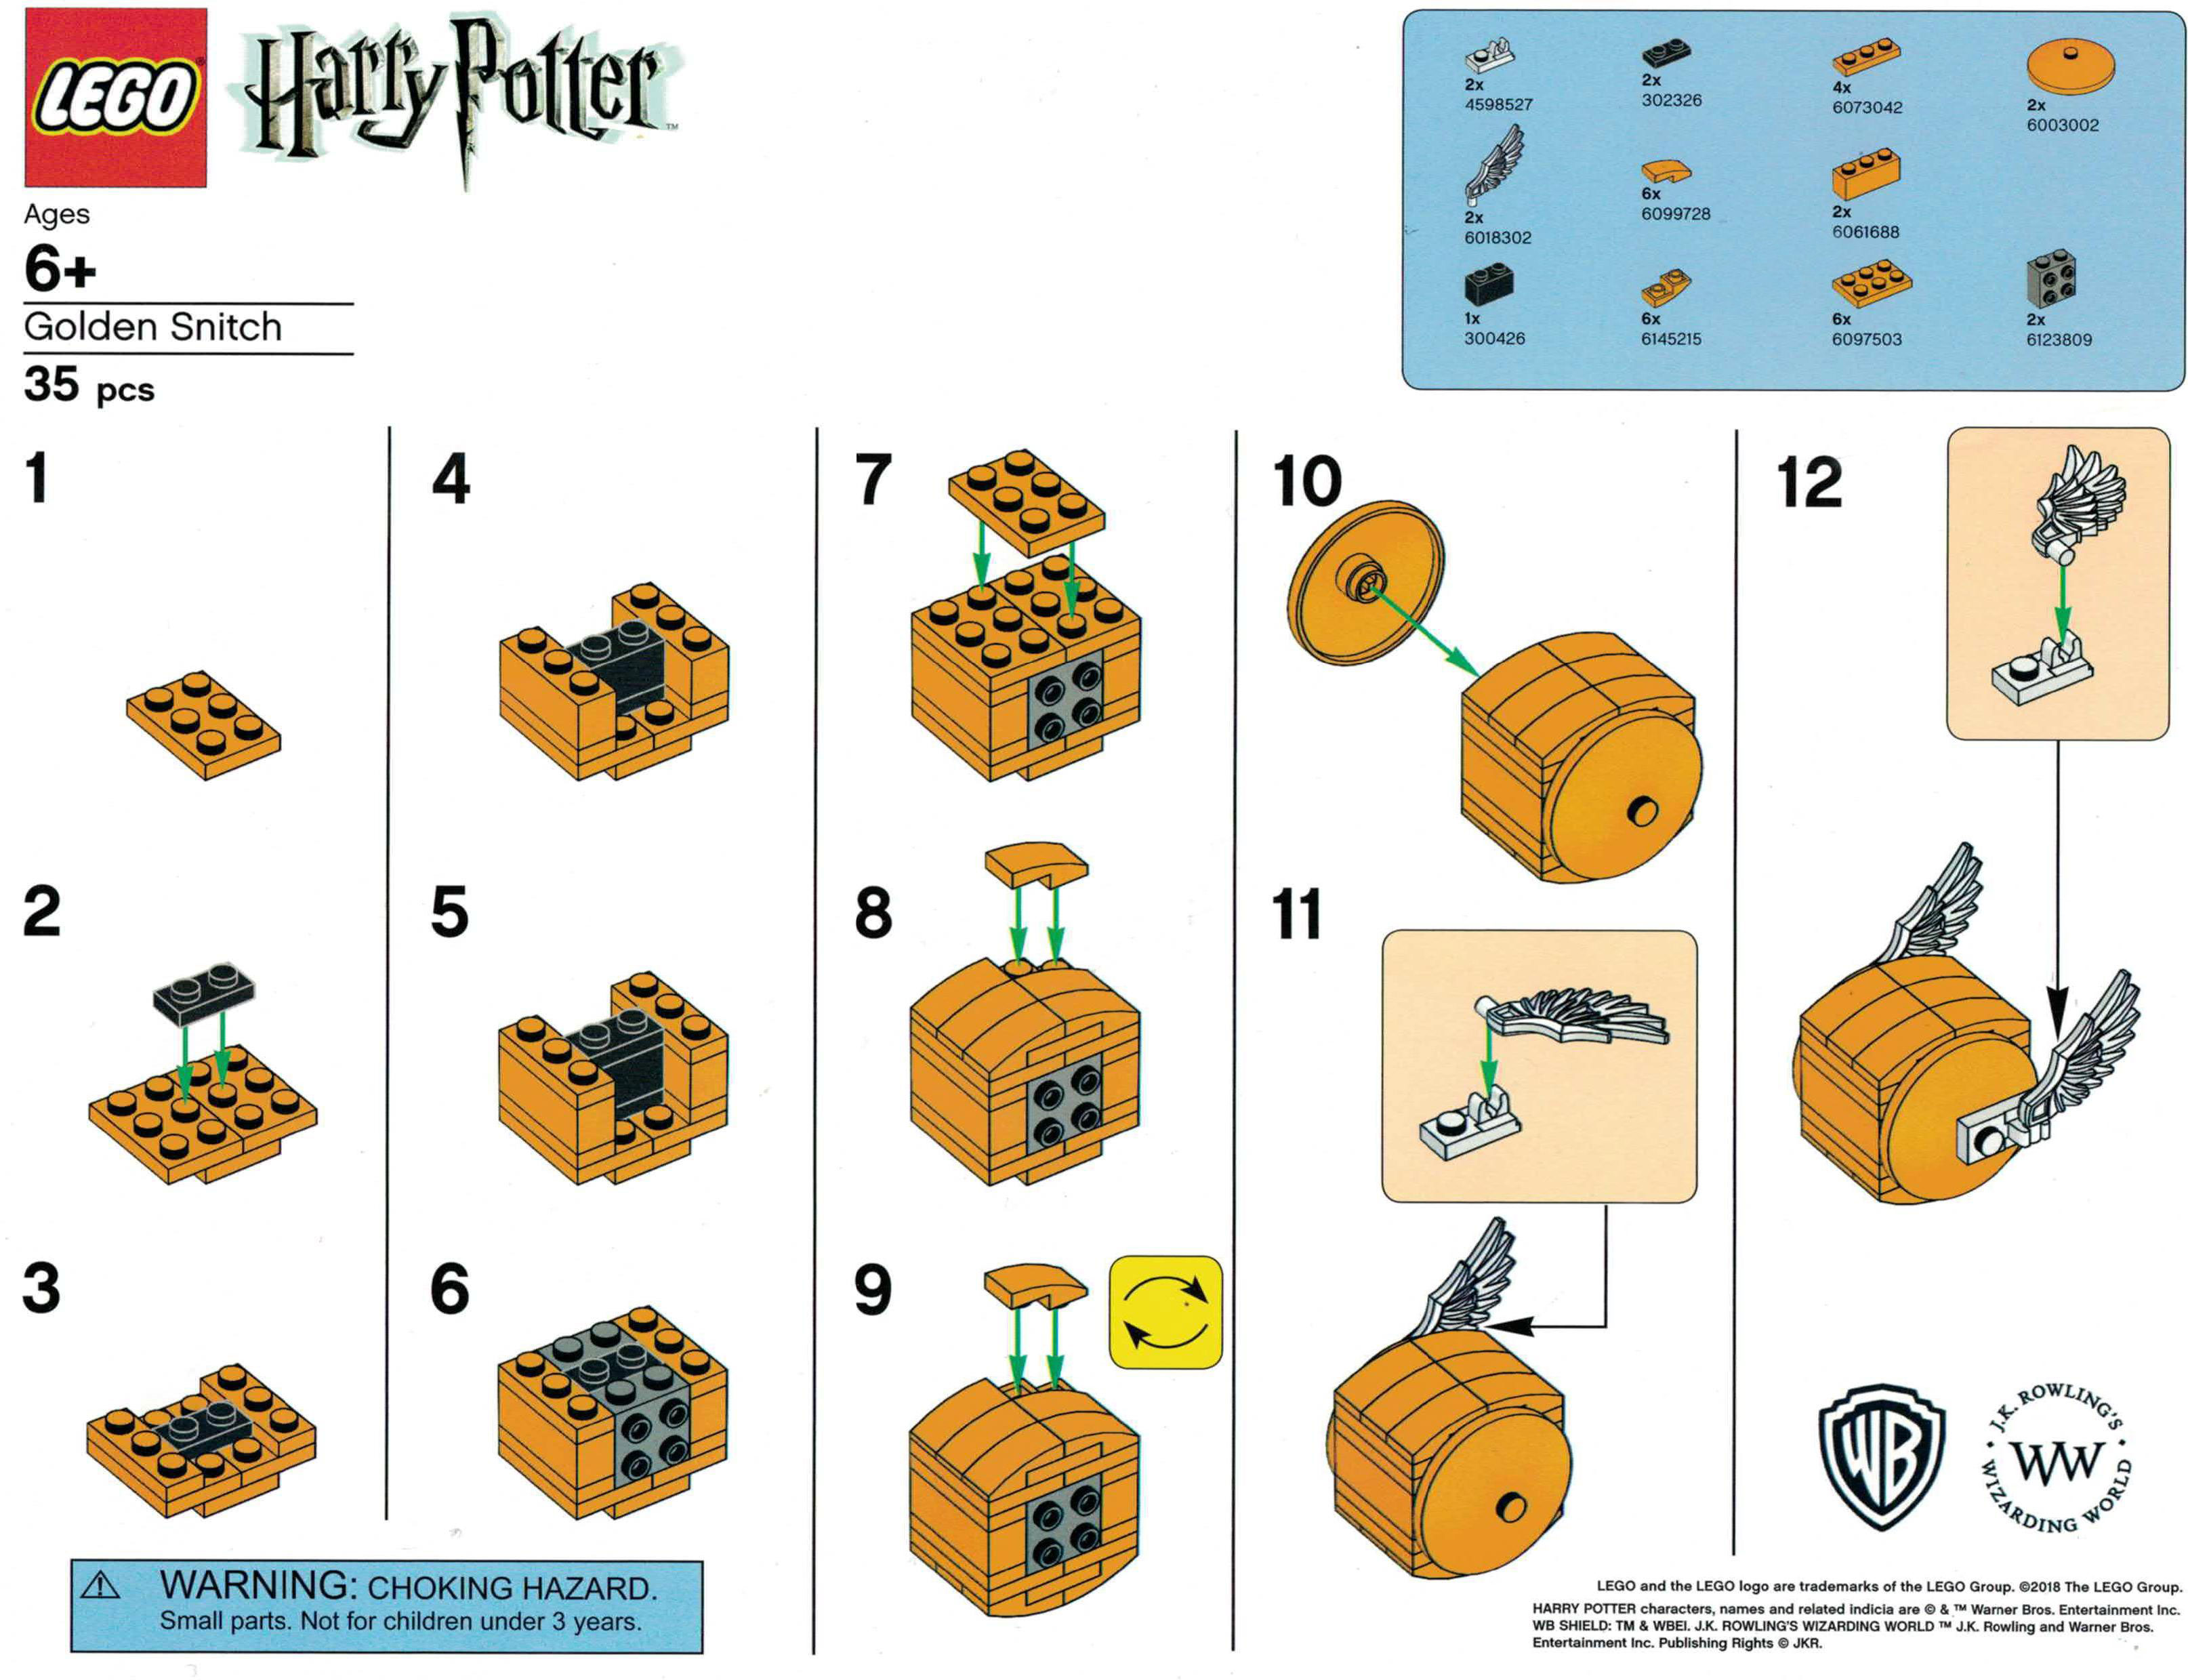 lego-harry-potter-golden-snitch-barnes-and-noble-instructions-touch-up